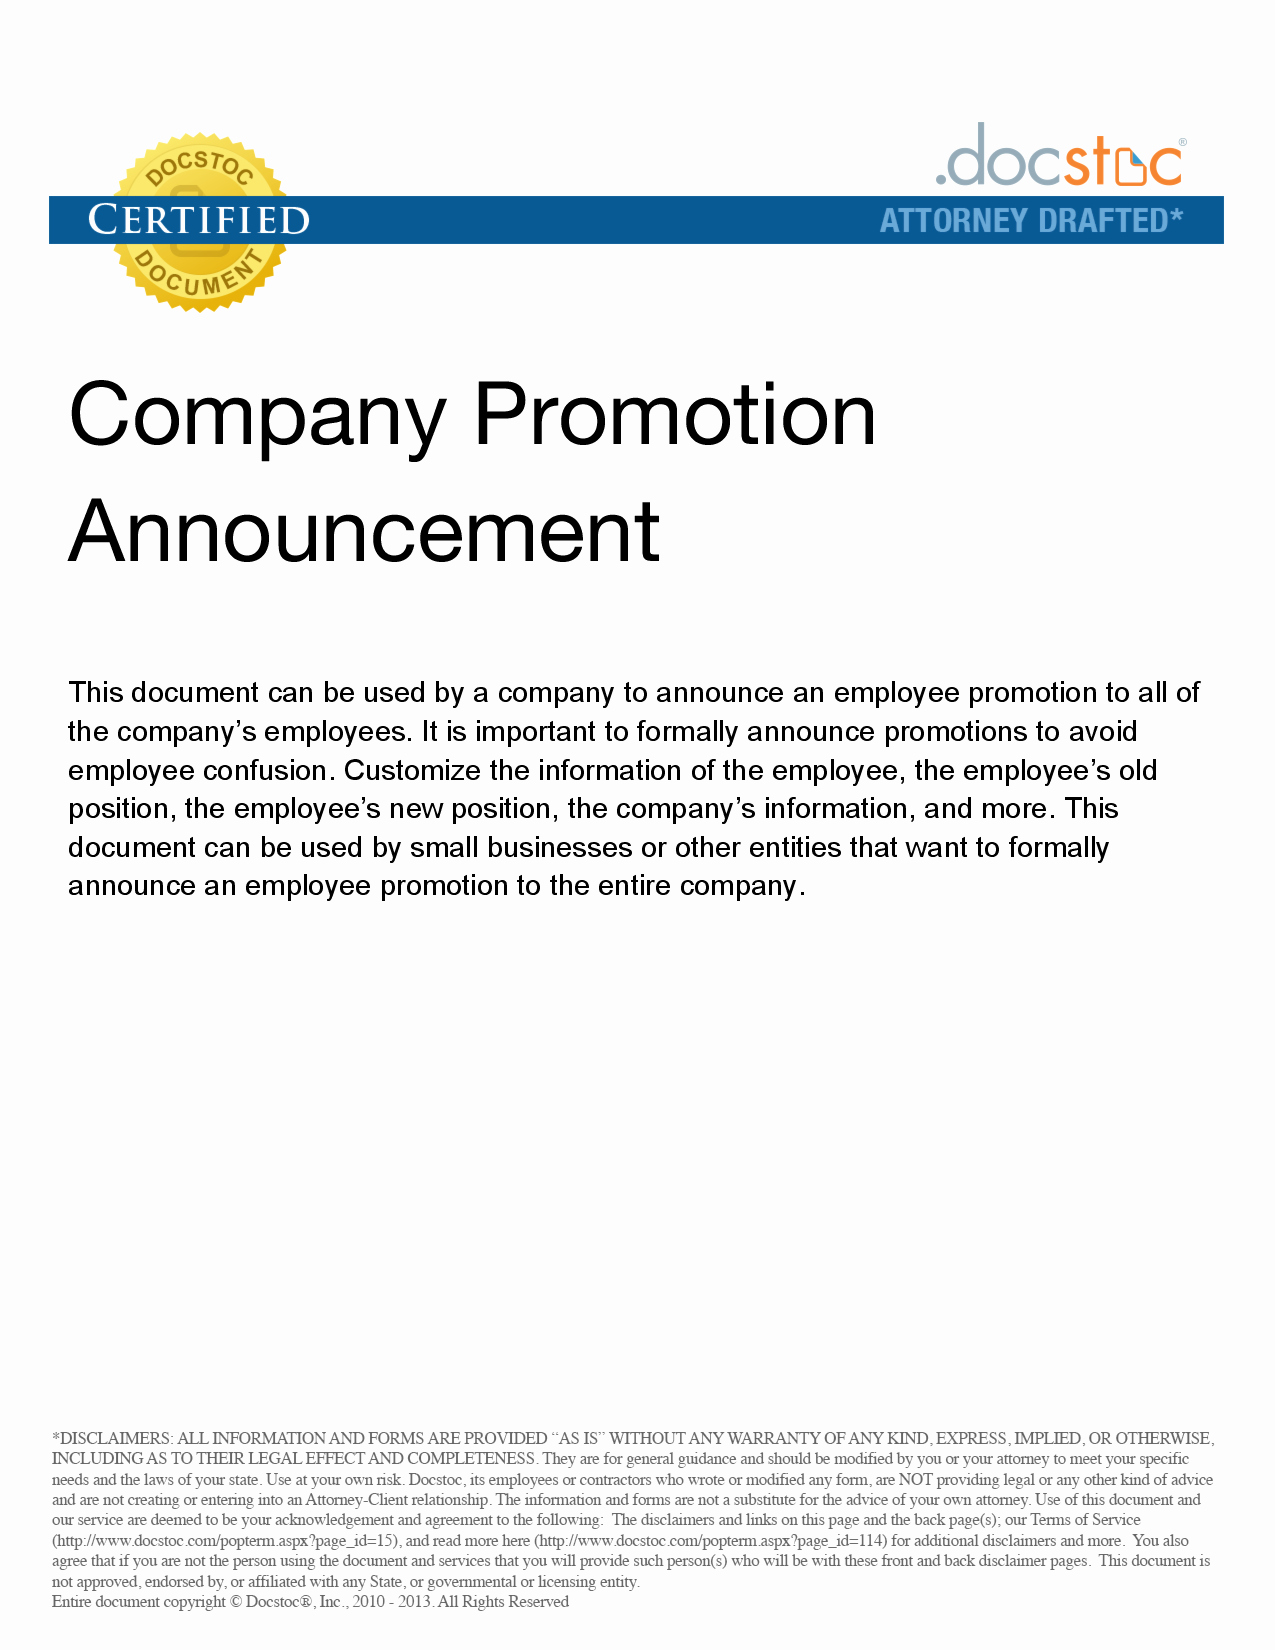 Promotion Announcement Letters Luxury Best S Of Job Promotion Announcement Examples